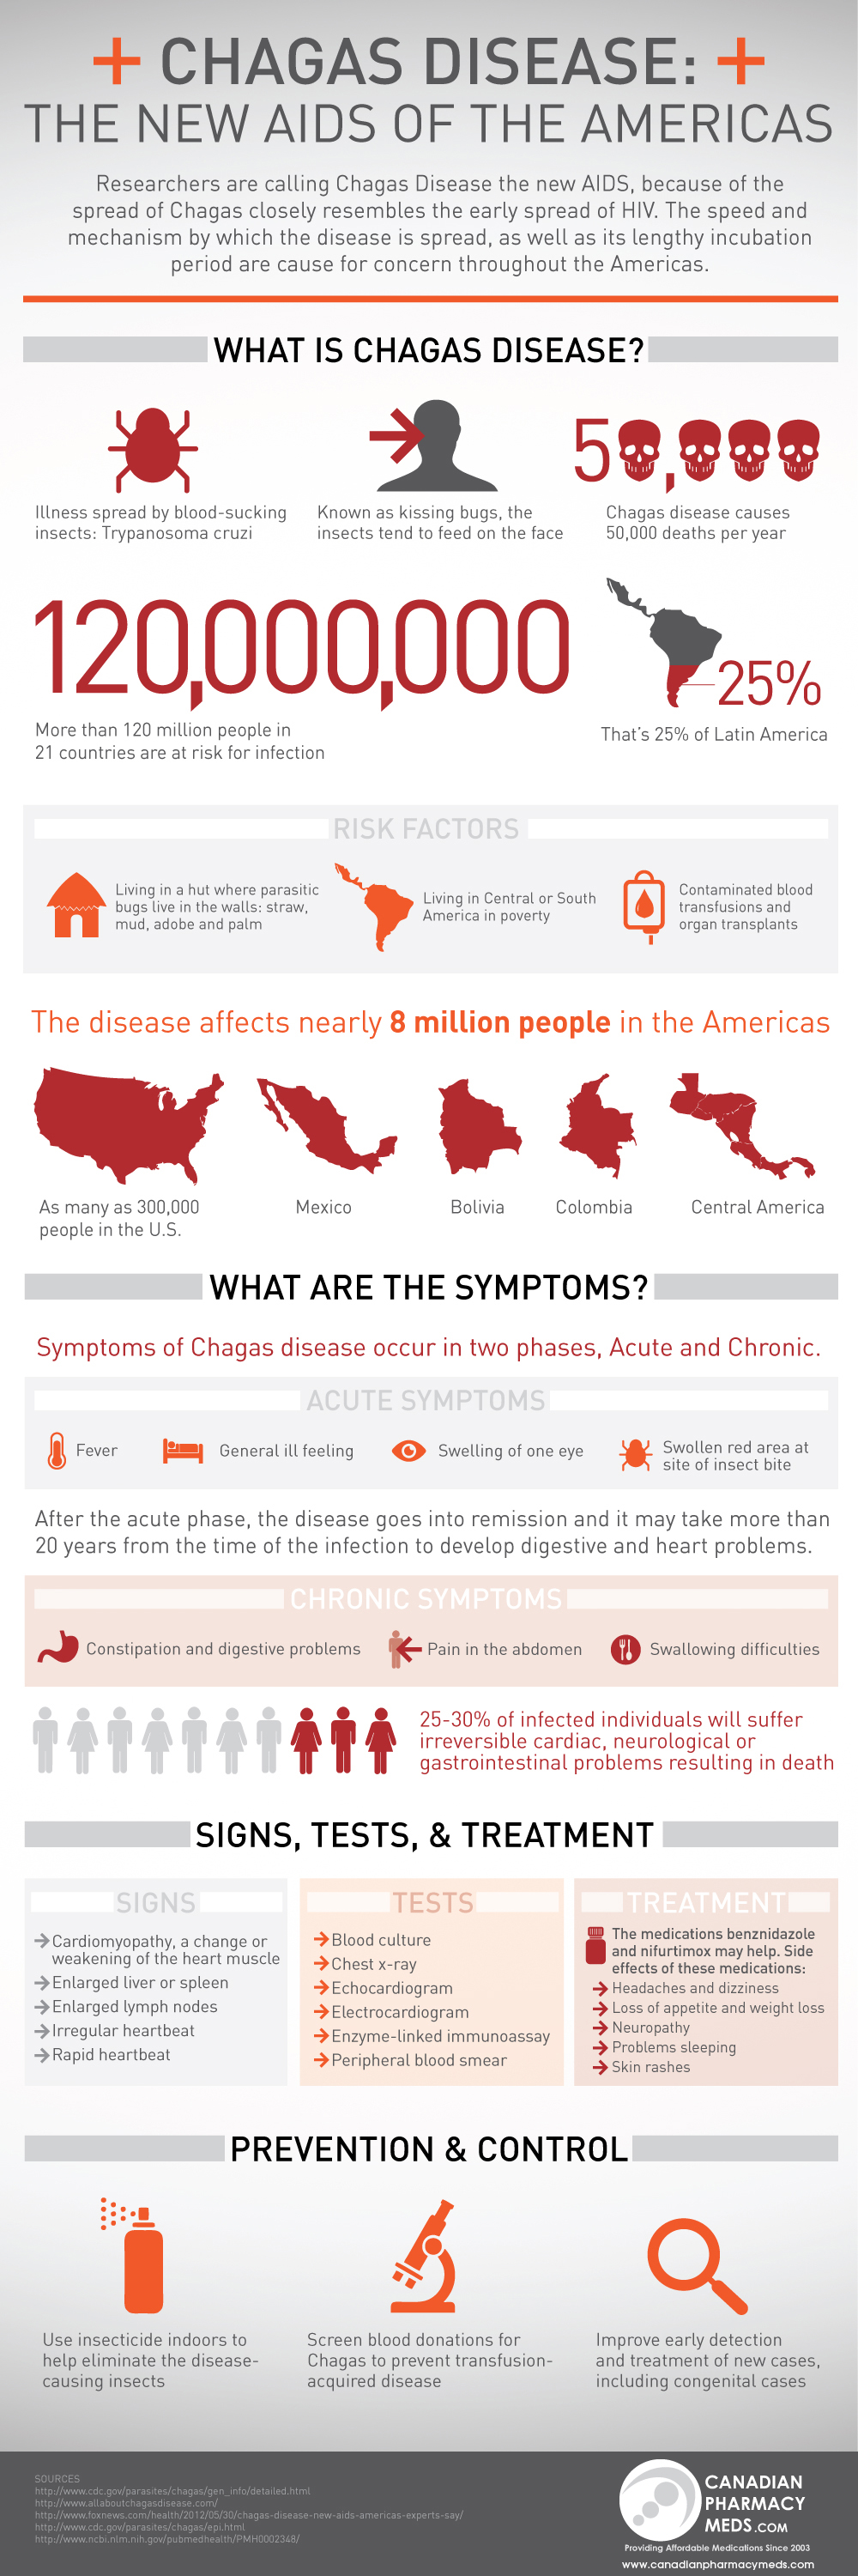 AbledALERT-Chagas info graphic from CanadianPharmacyMeds.com contains a graphical layout of the information we have already detailed in our FAQ section and in the main post and videos sections. Click here to go to CanadianPharmacyMeds.com .